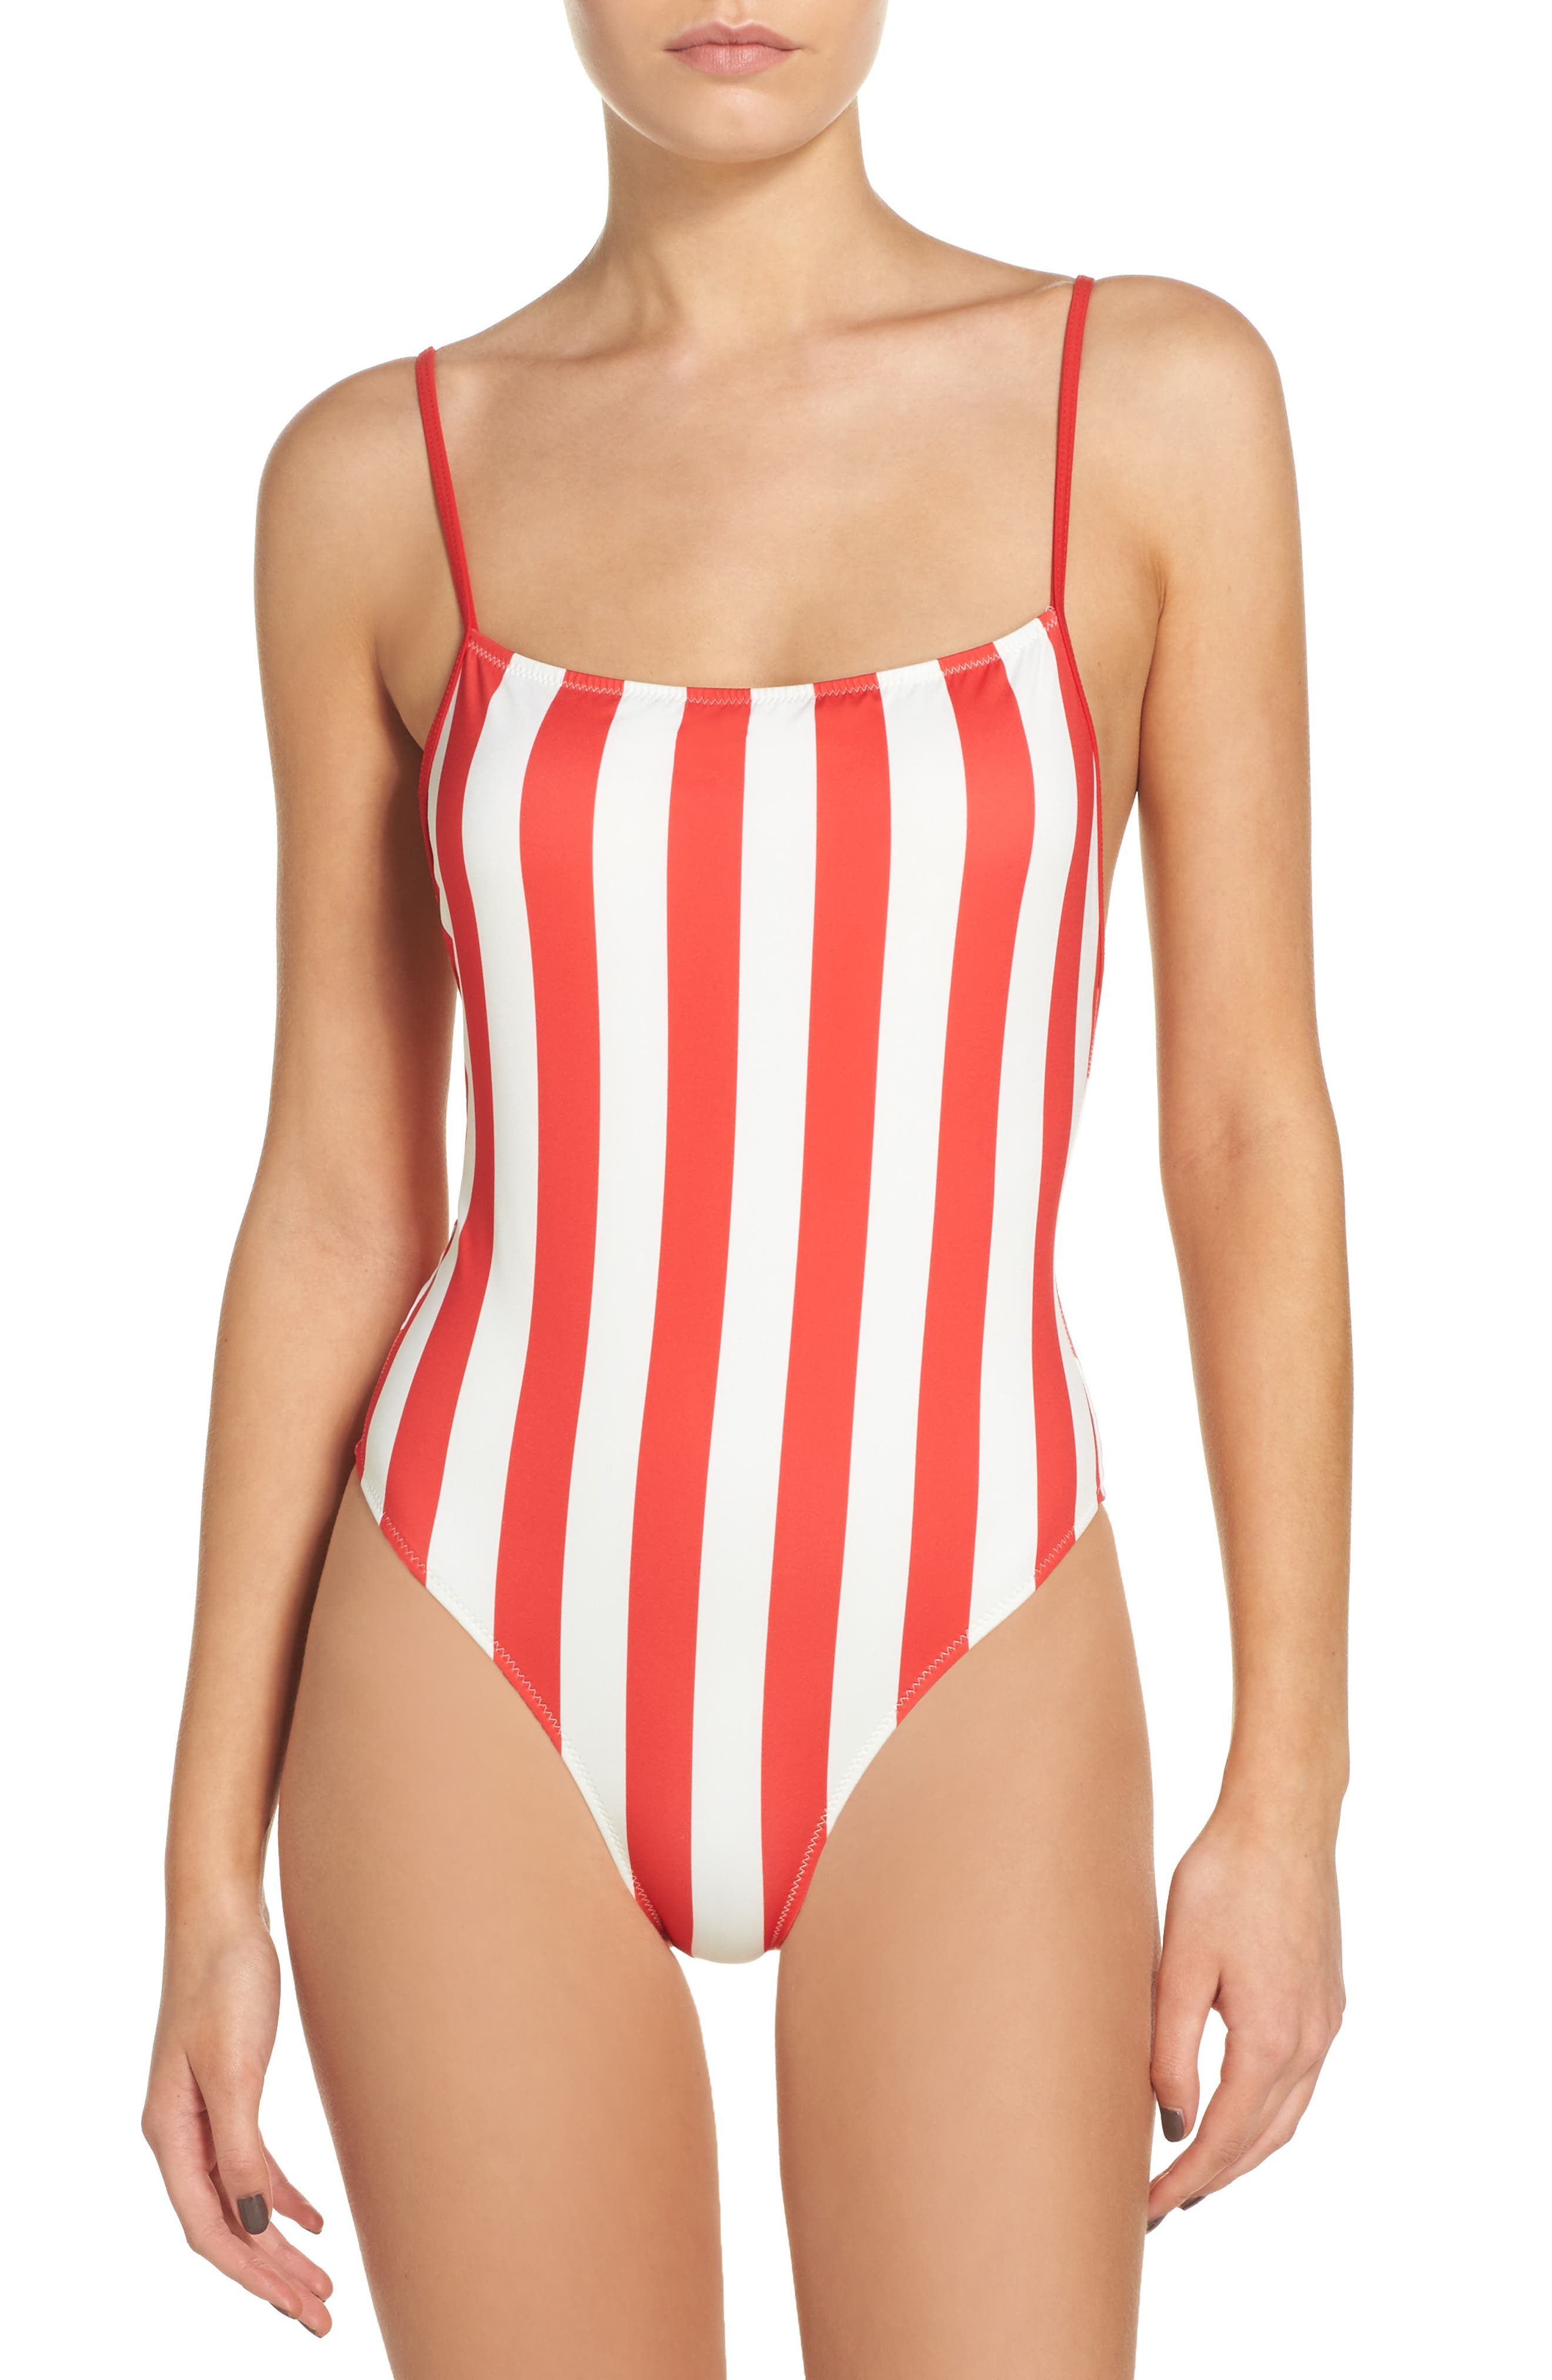 Striped & Solid Chelsea One-Piece Swimsuit